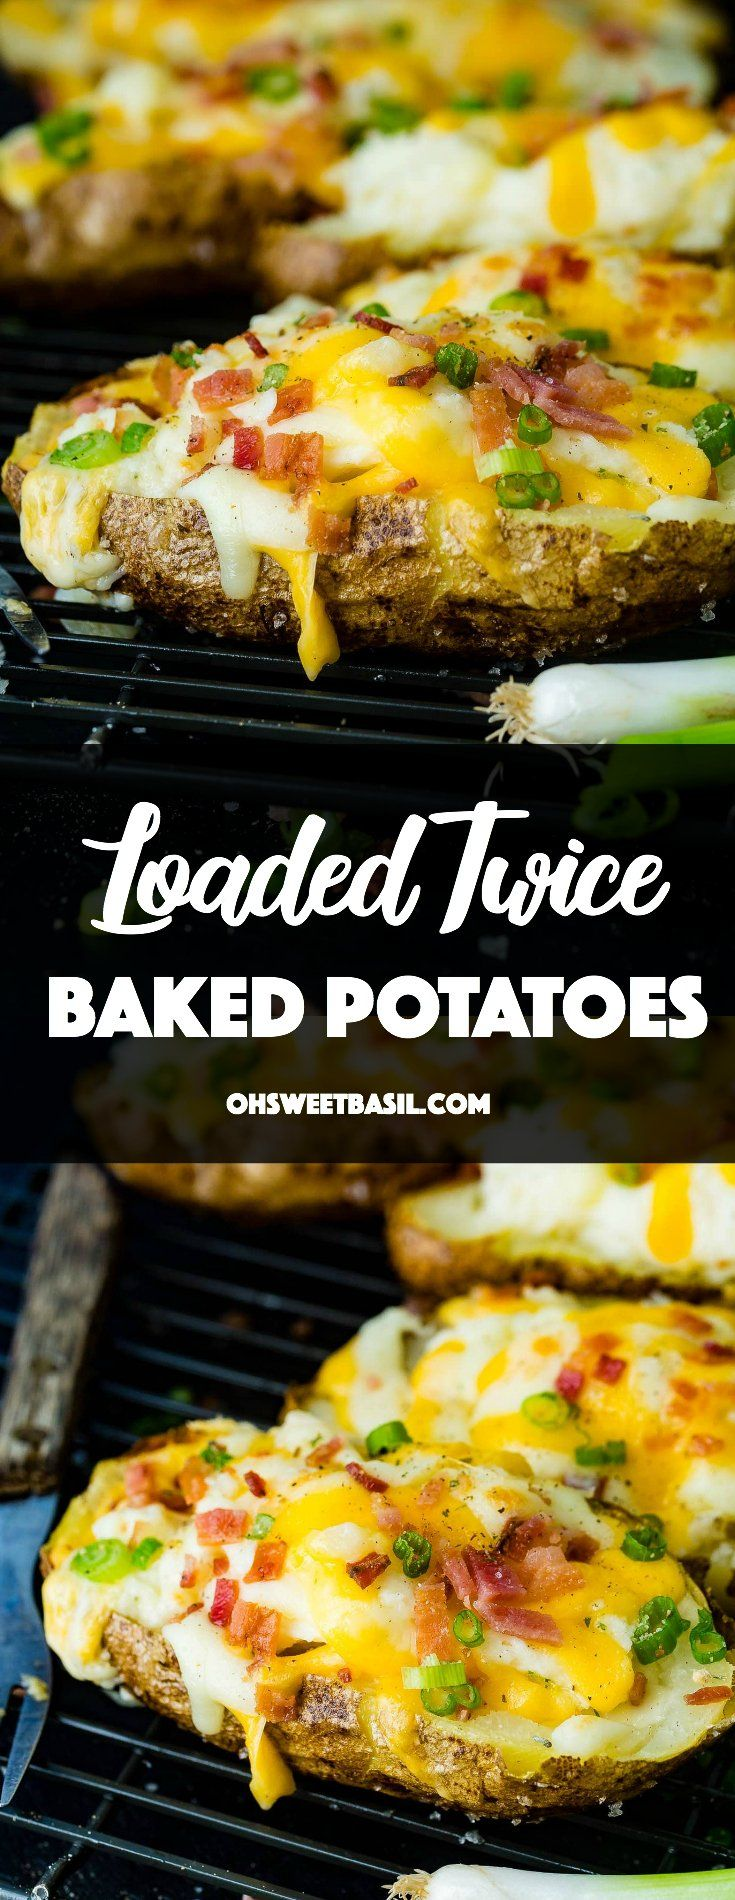 Loaded twice baked potatoes recipe - oh sweet basil